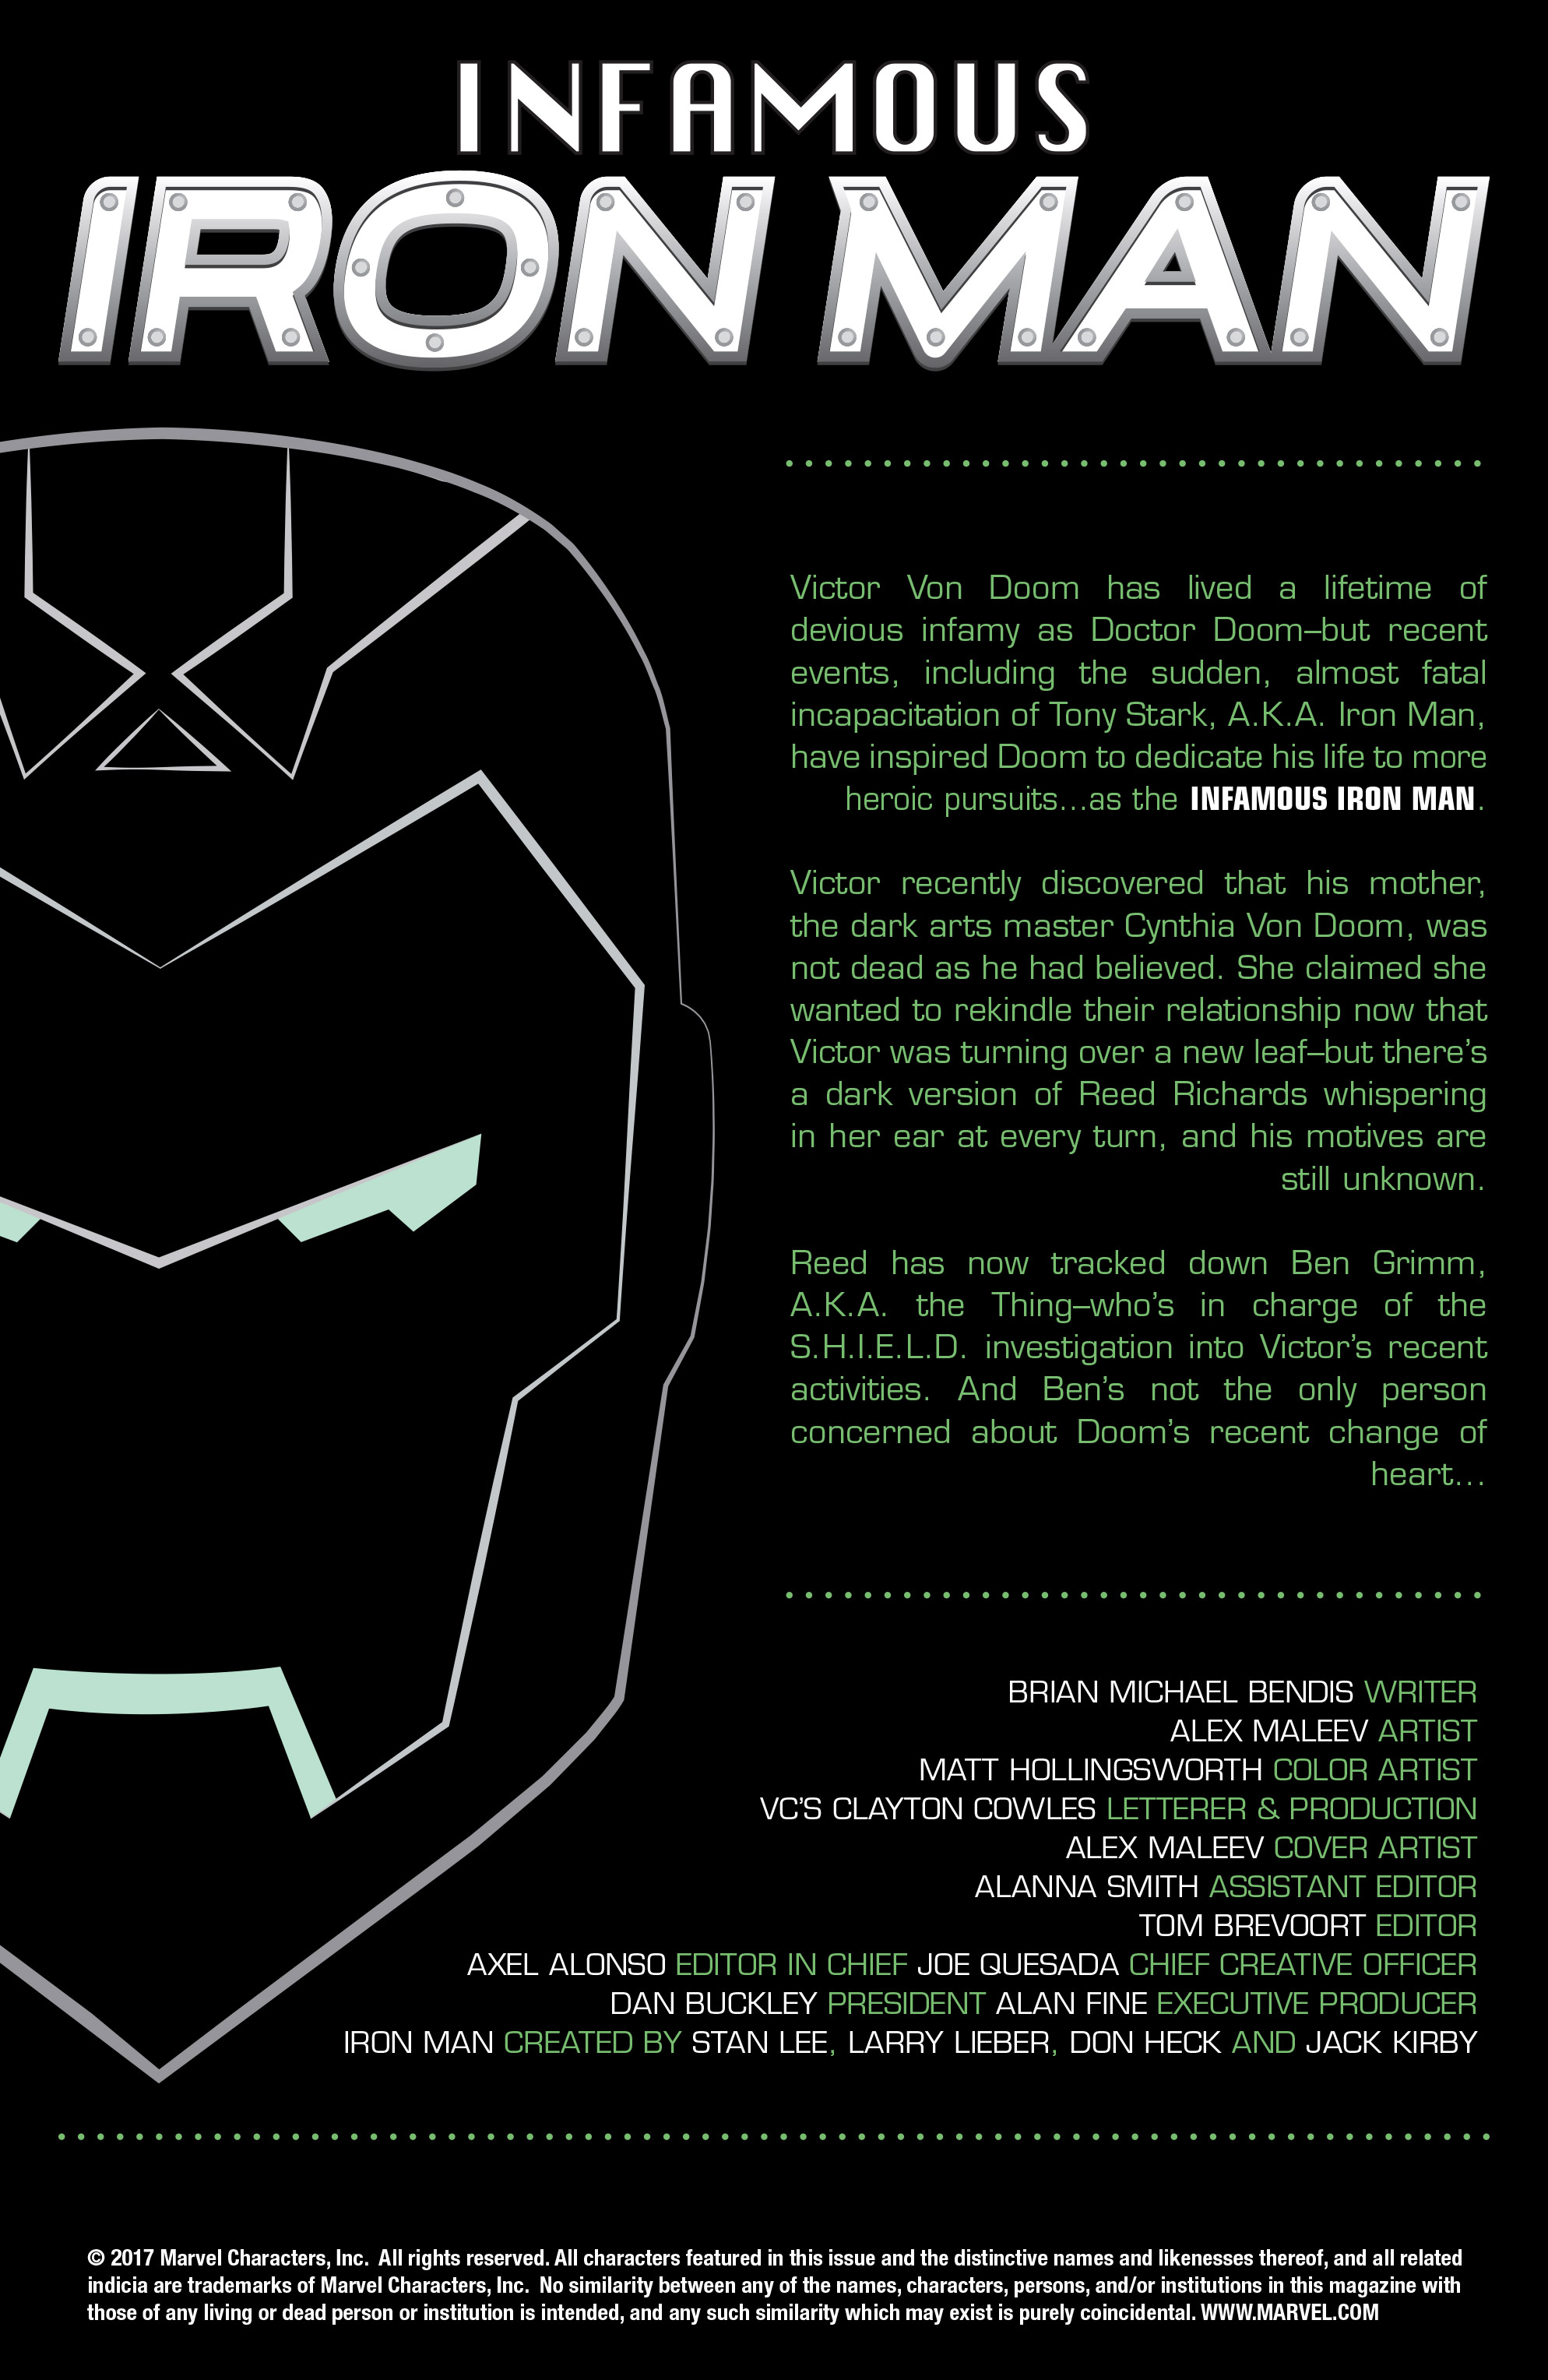 Read online Infamous Iron Man comic -  Issue #8 - 2